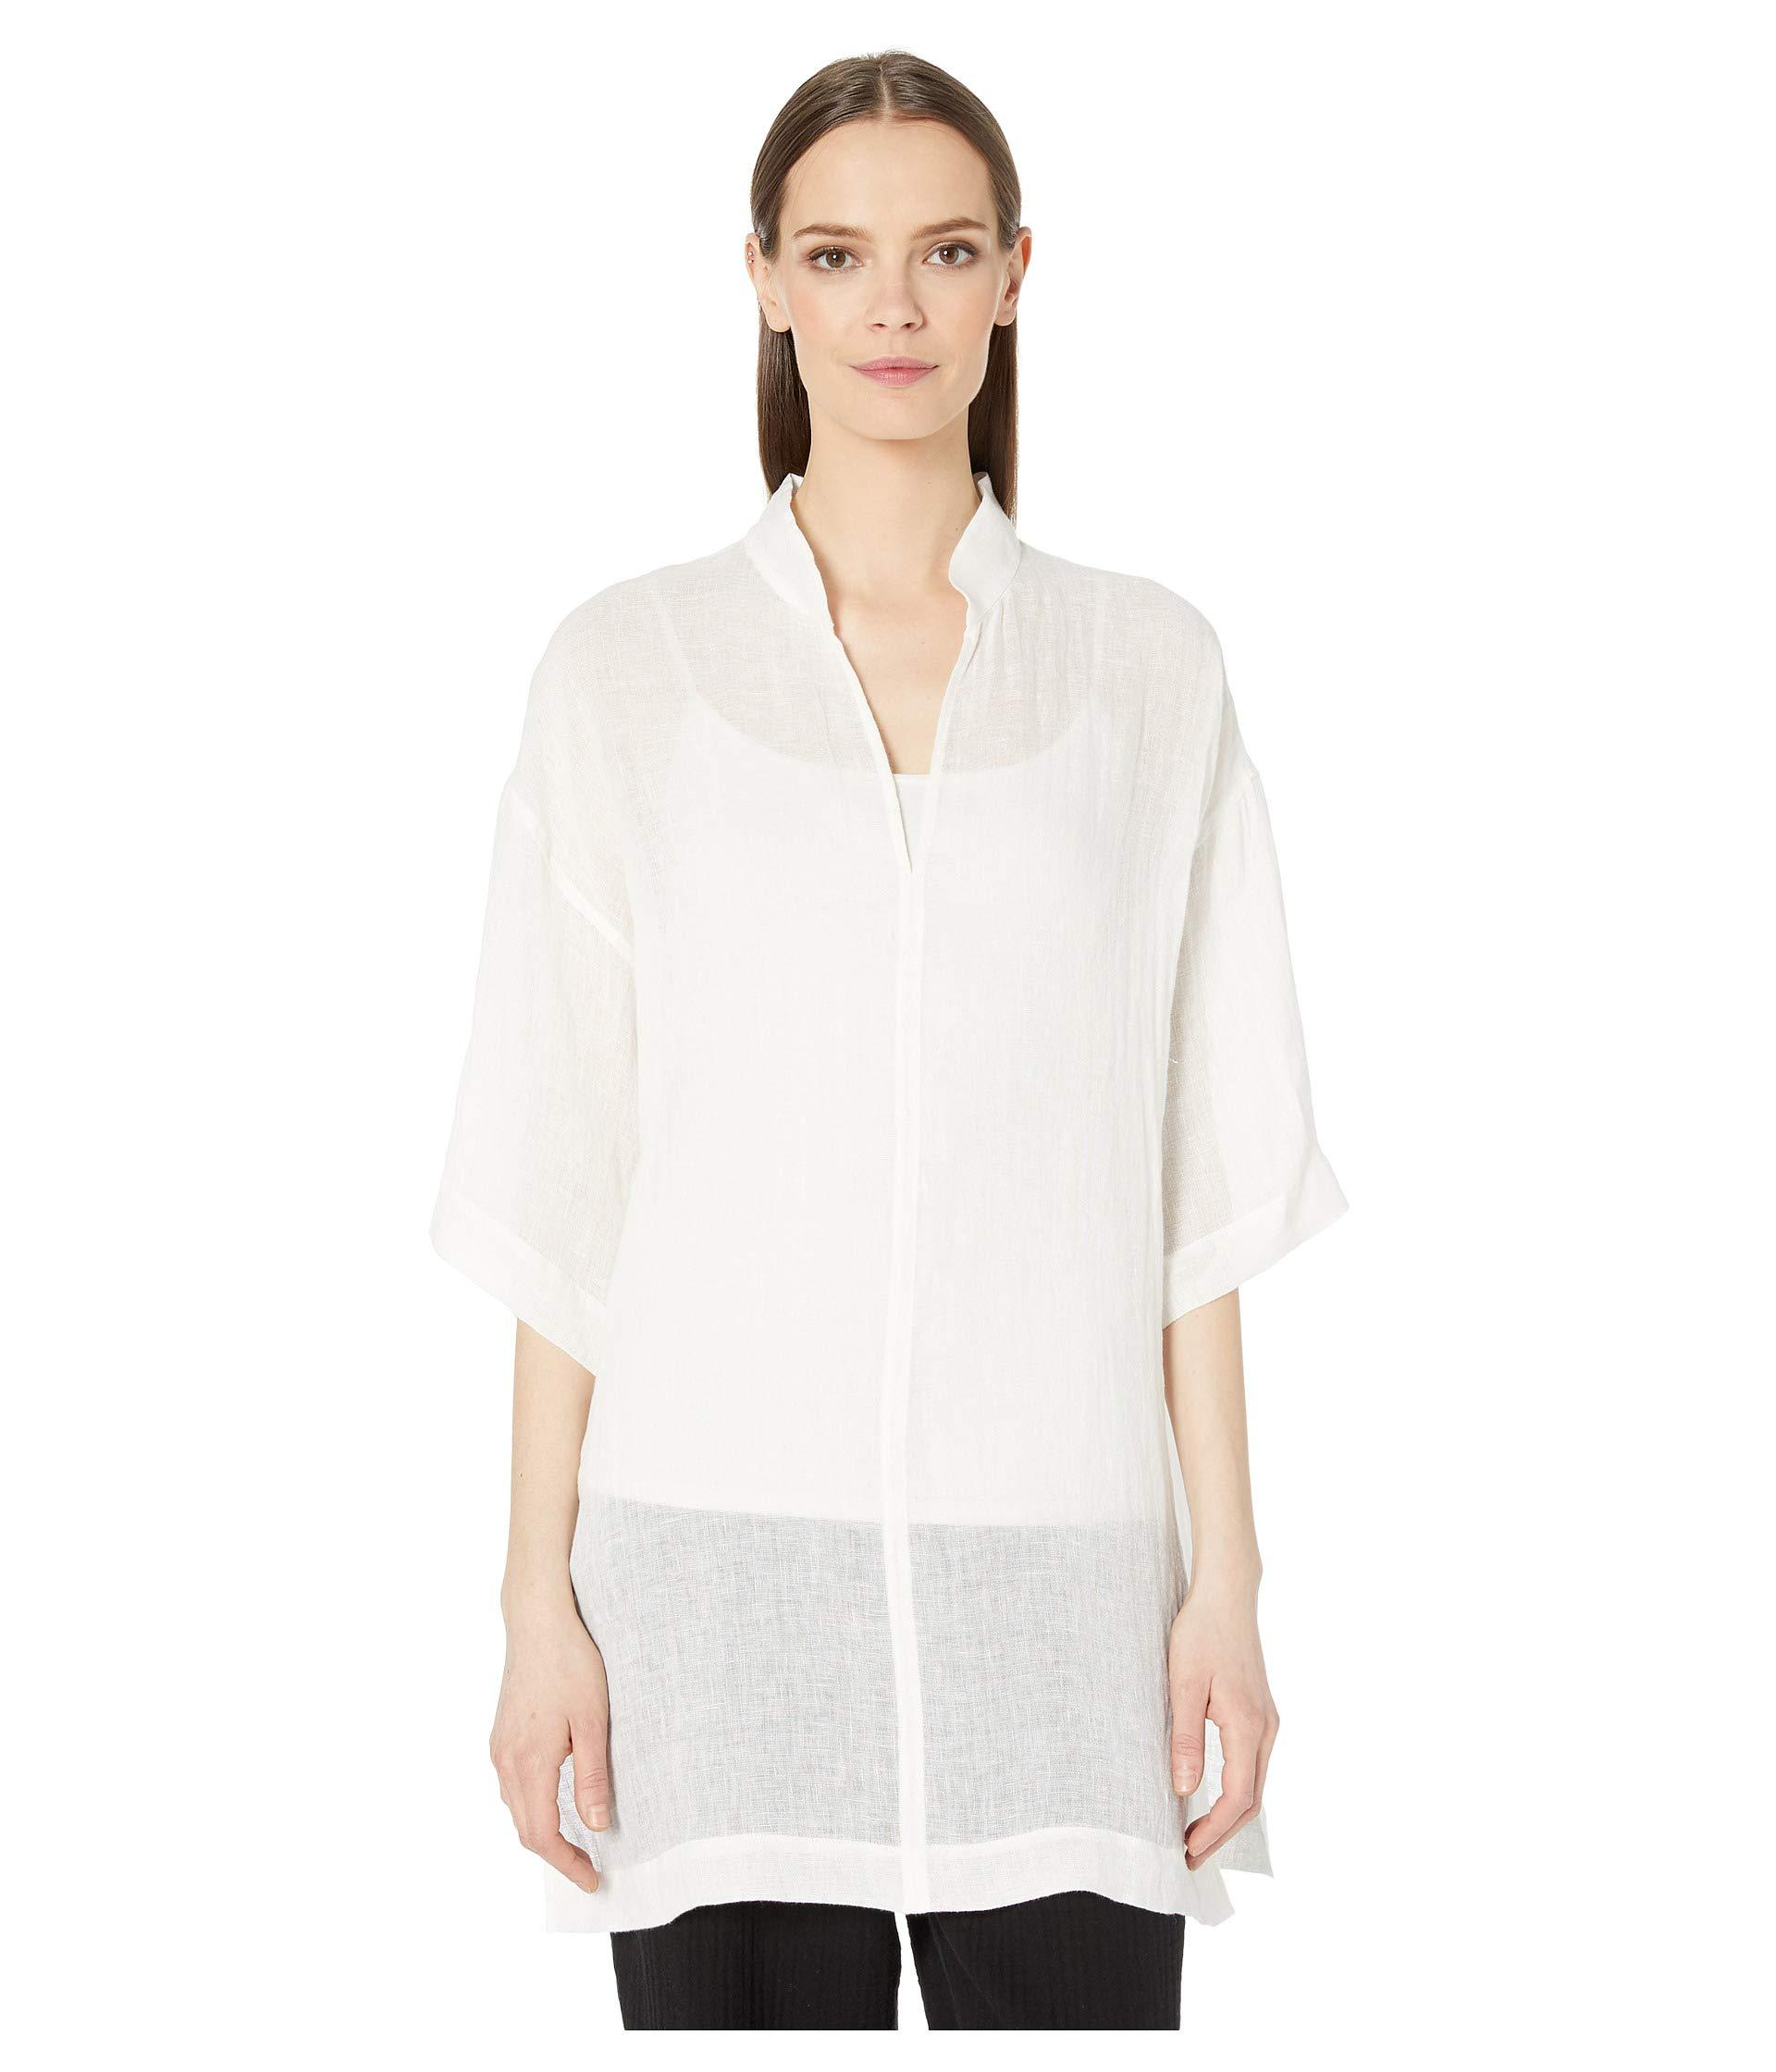 bc49c1fc068 Eileen Fisher. Organic Linen Gauze Stand Collar Tunic (white) Women s  Clothing